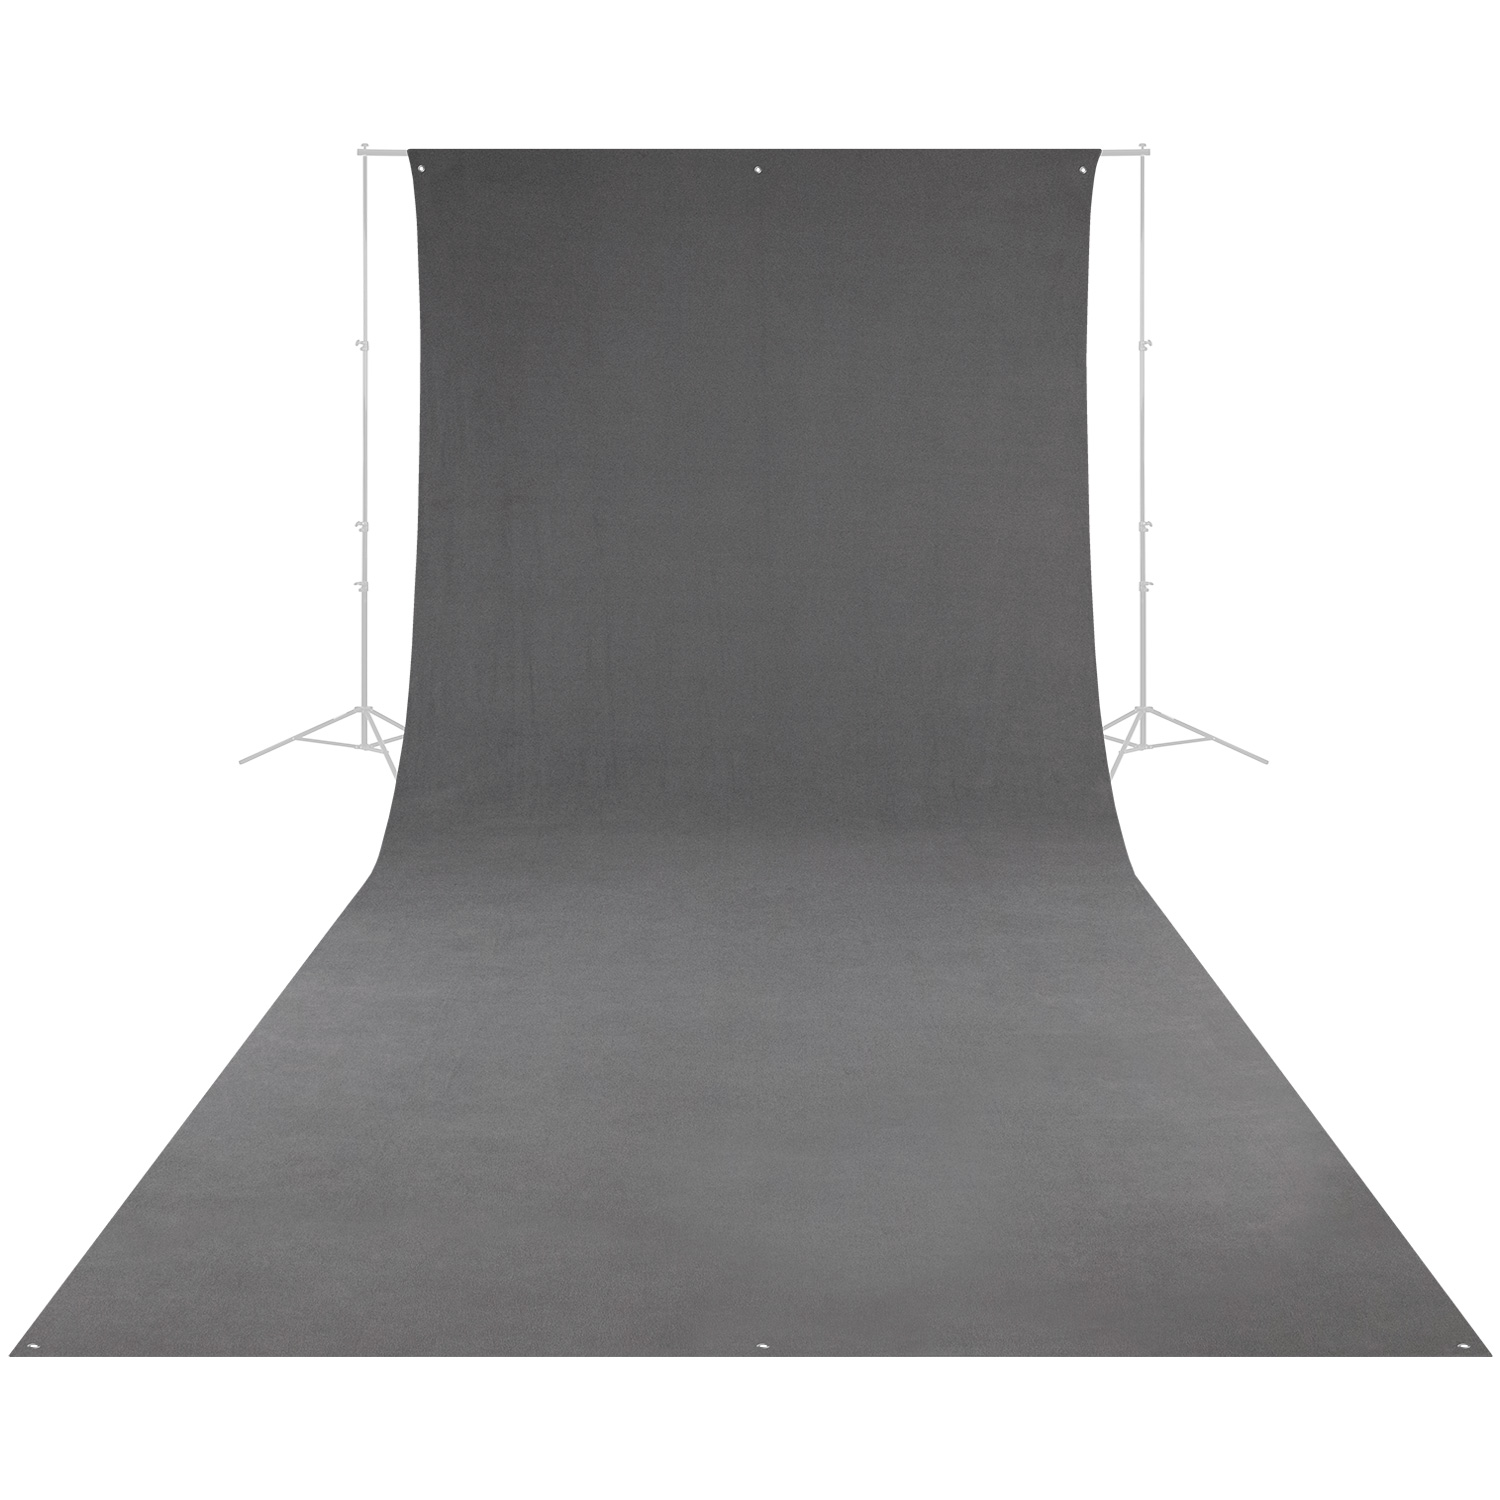 Wrinkle-Resistant Backdrop - Neutral Gray (9' x 20')